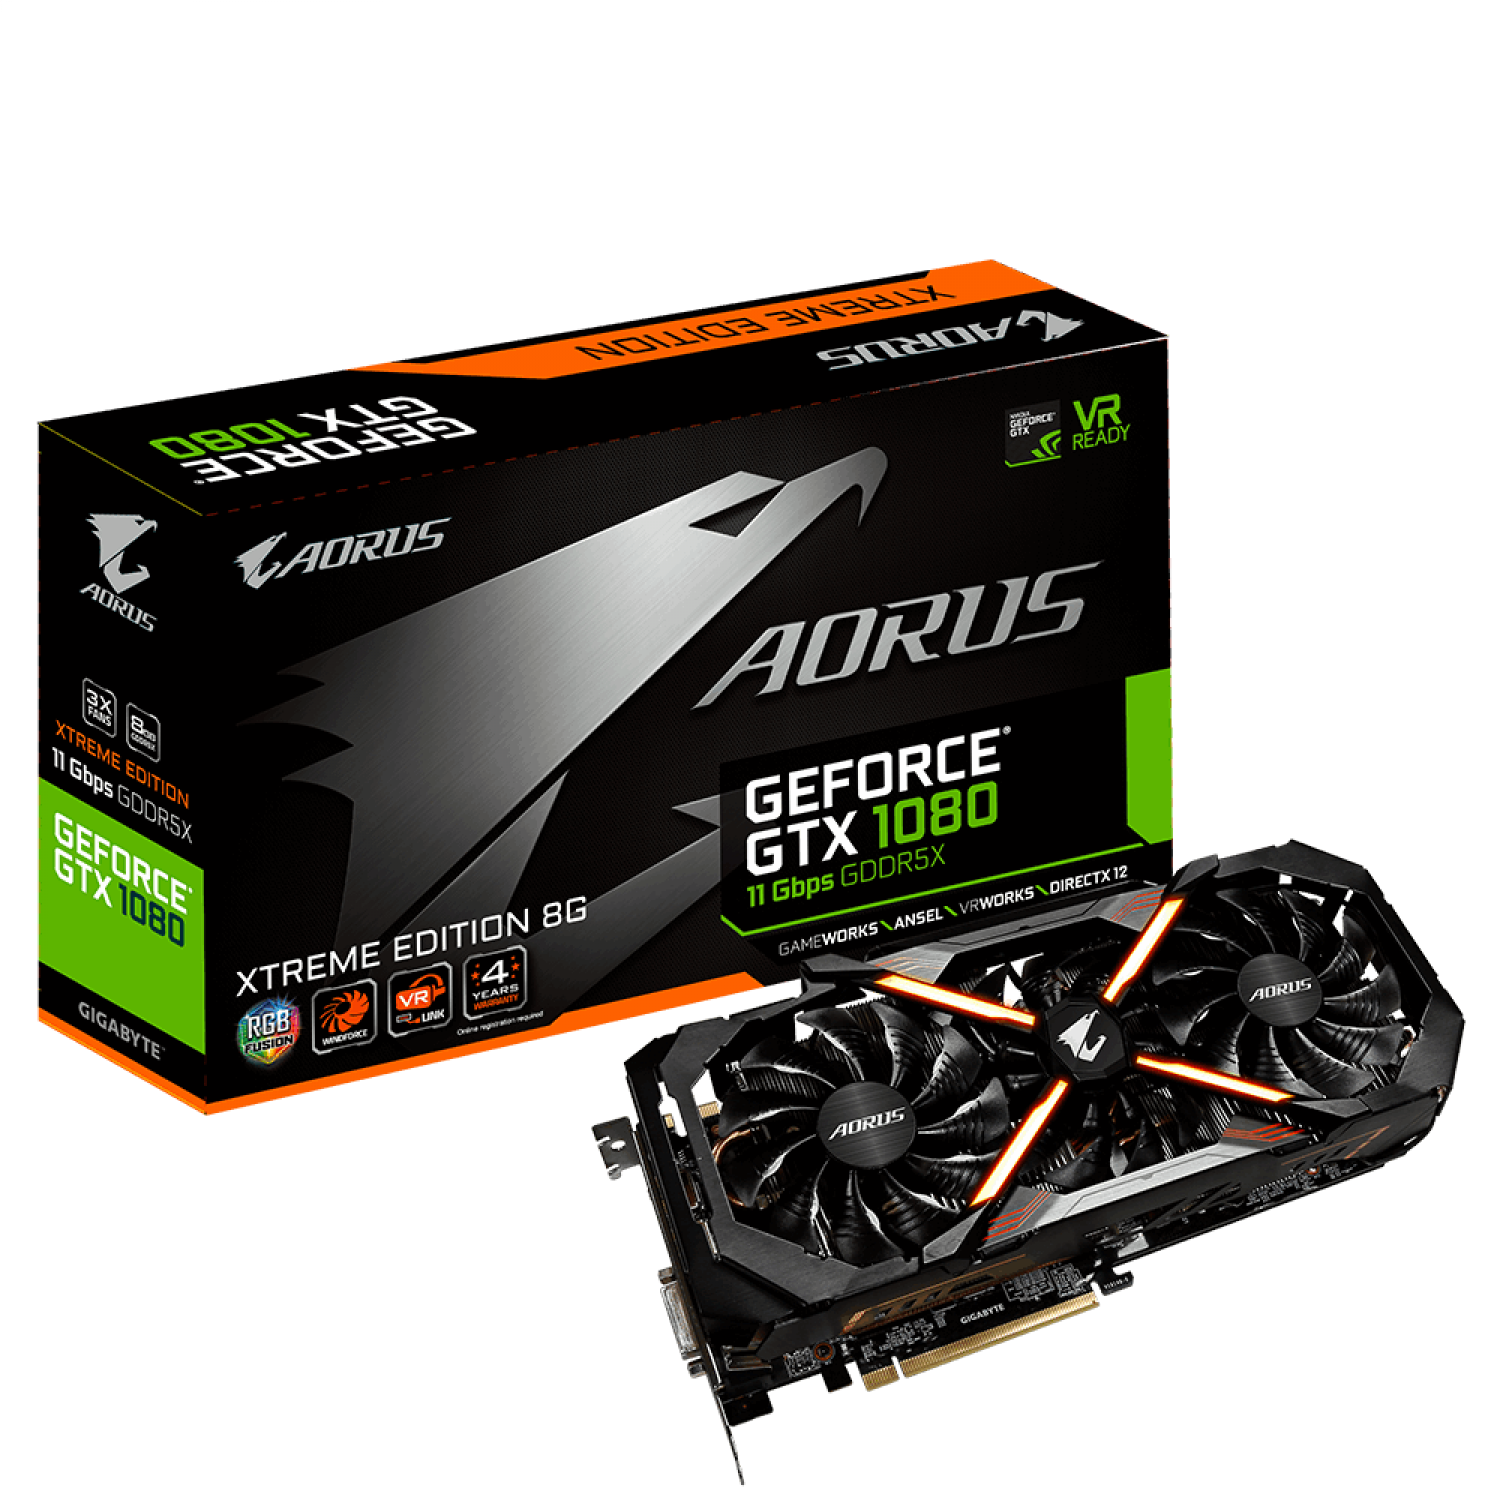 PLACA DE VIDEO GIGABYTE GTX1080 AORUS XTREME EDITION 8G 11GBPS REV 1.0